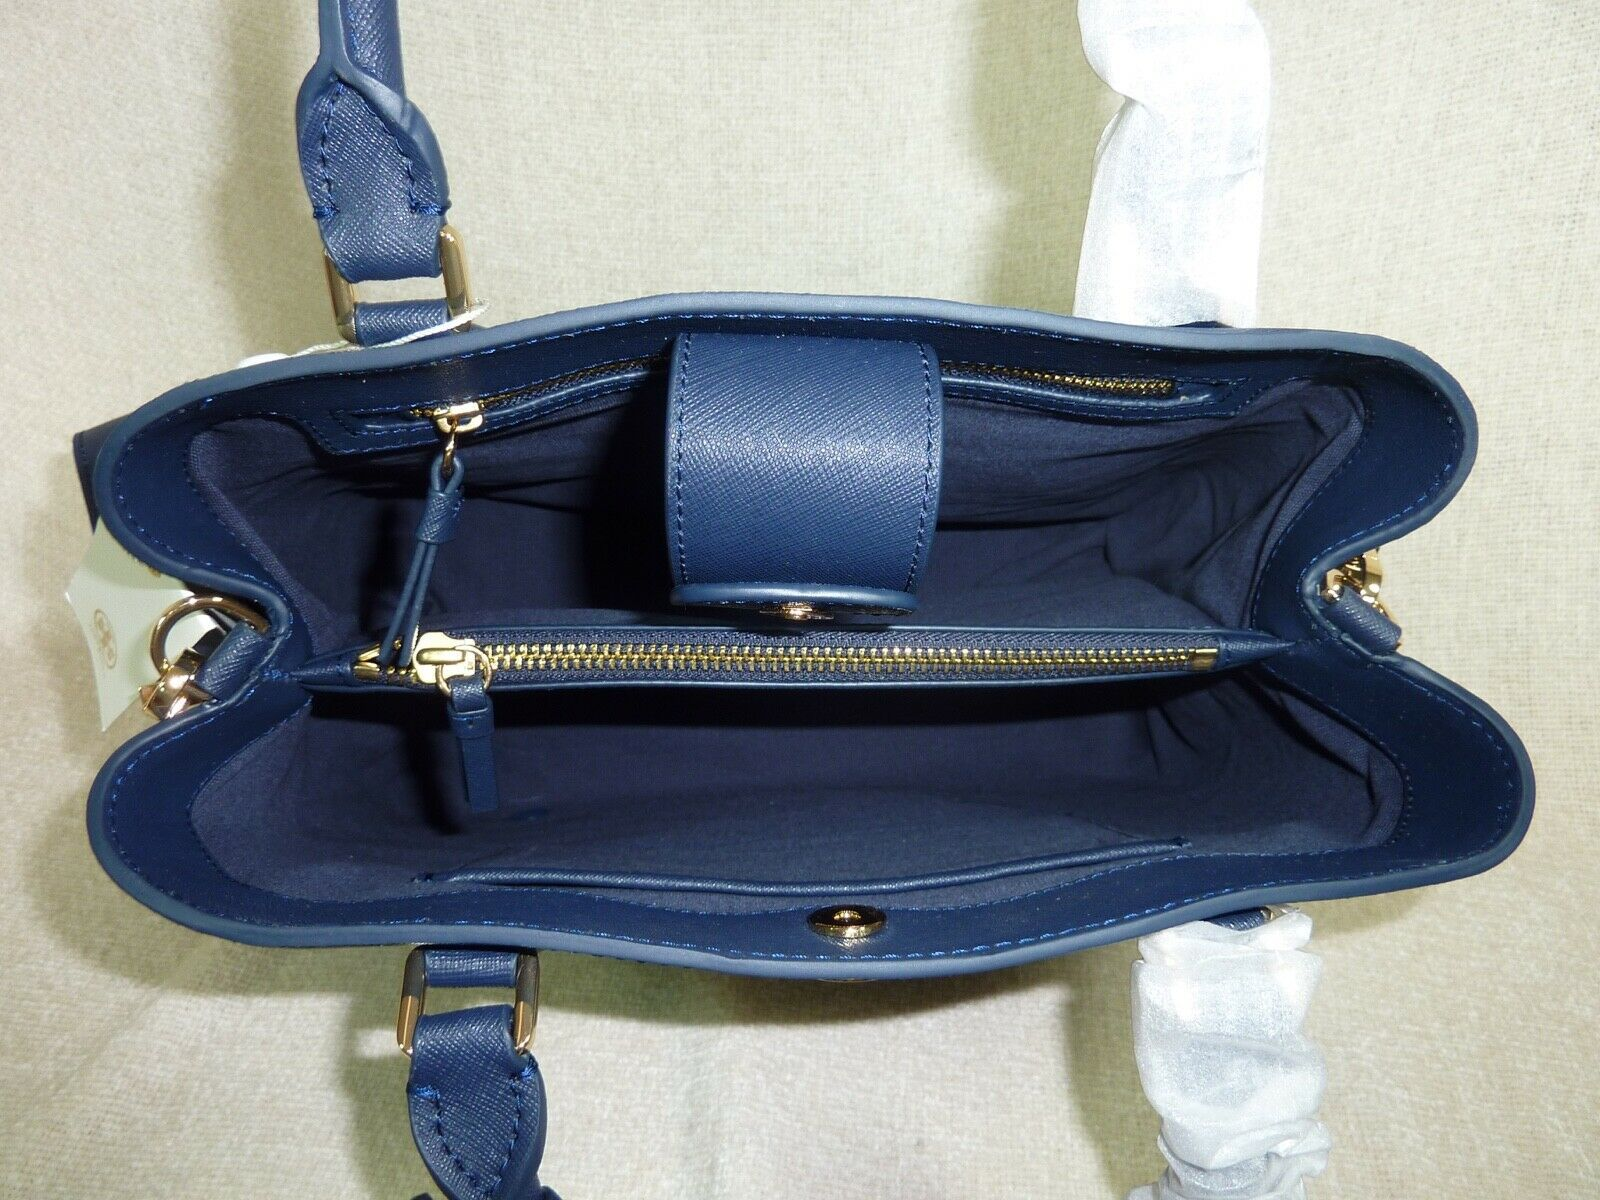 Nwt Tory Burch Navy Saffiano Leder Robinson Triple-Compartment Tote $ 458 image 8